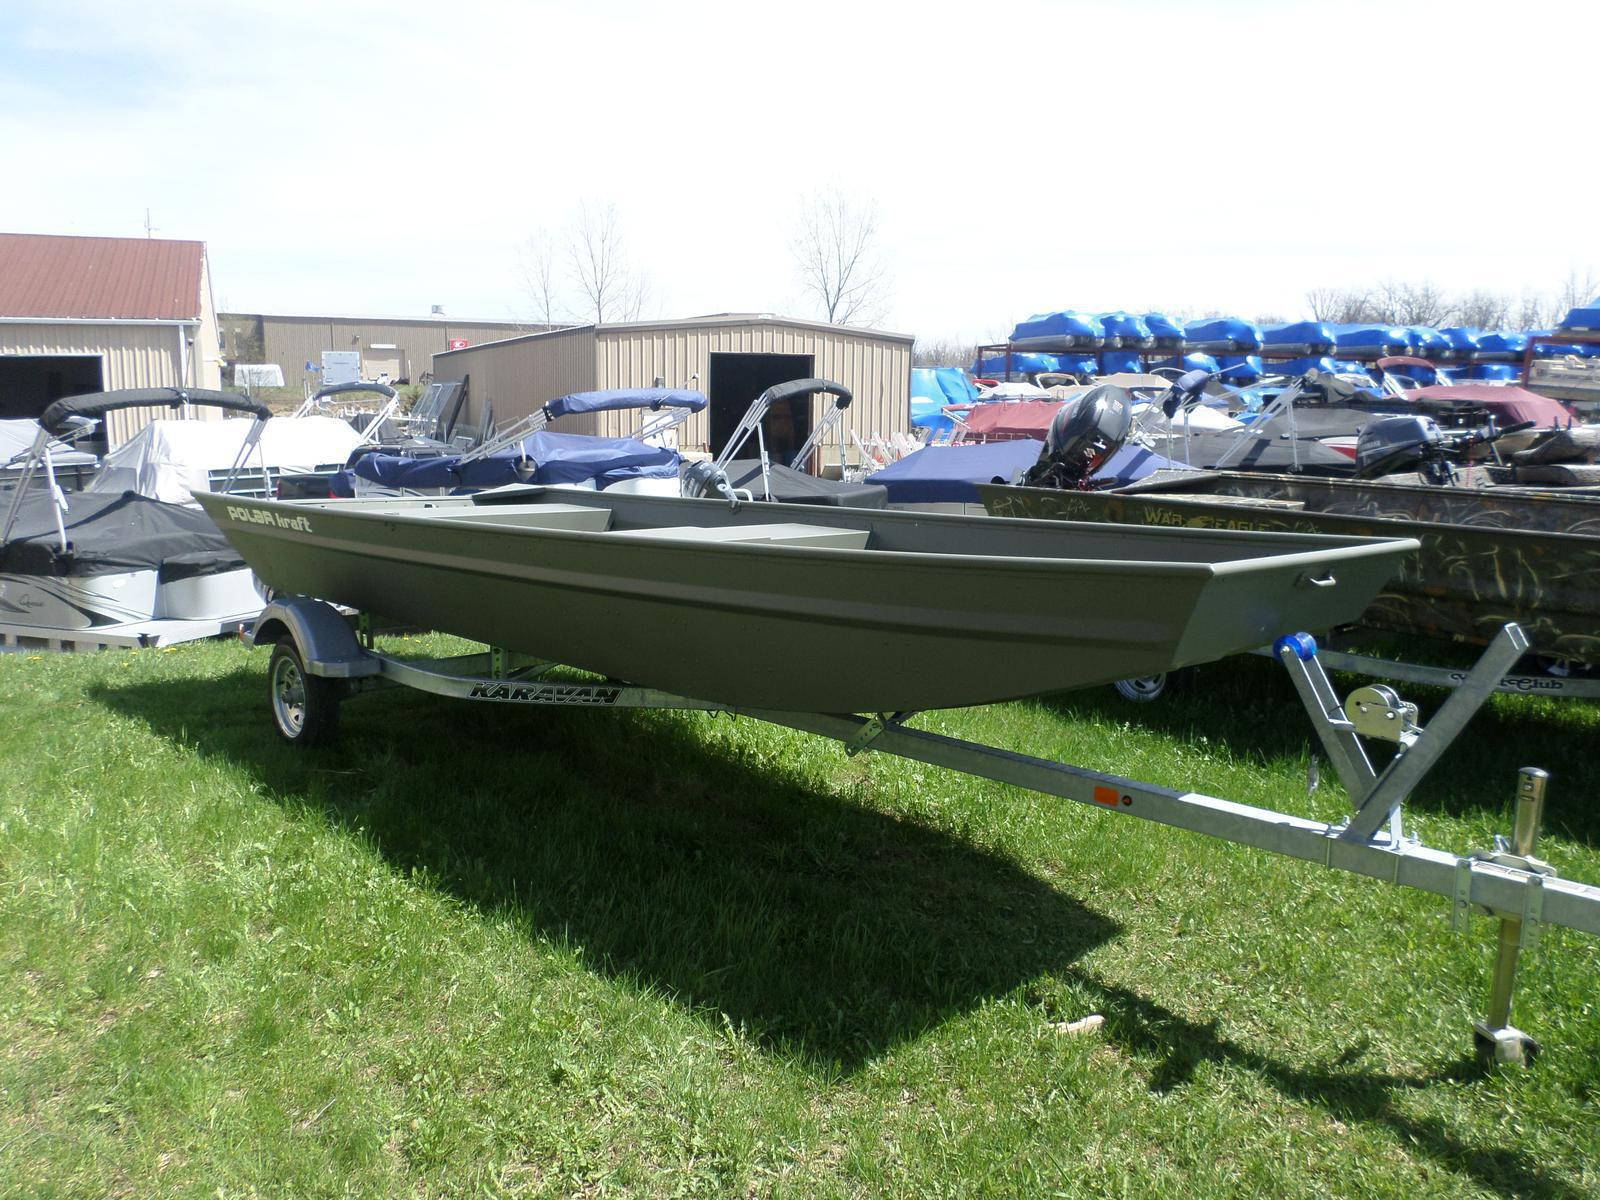 Polar Boats For Sale - Page 1 of 3 | Boat Buys